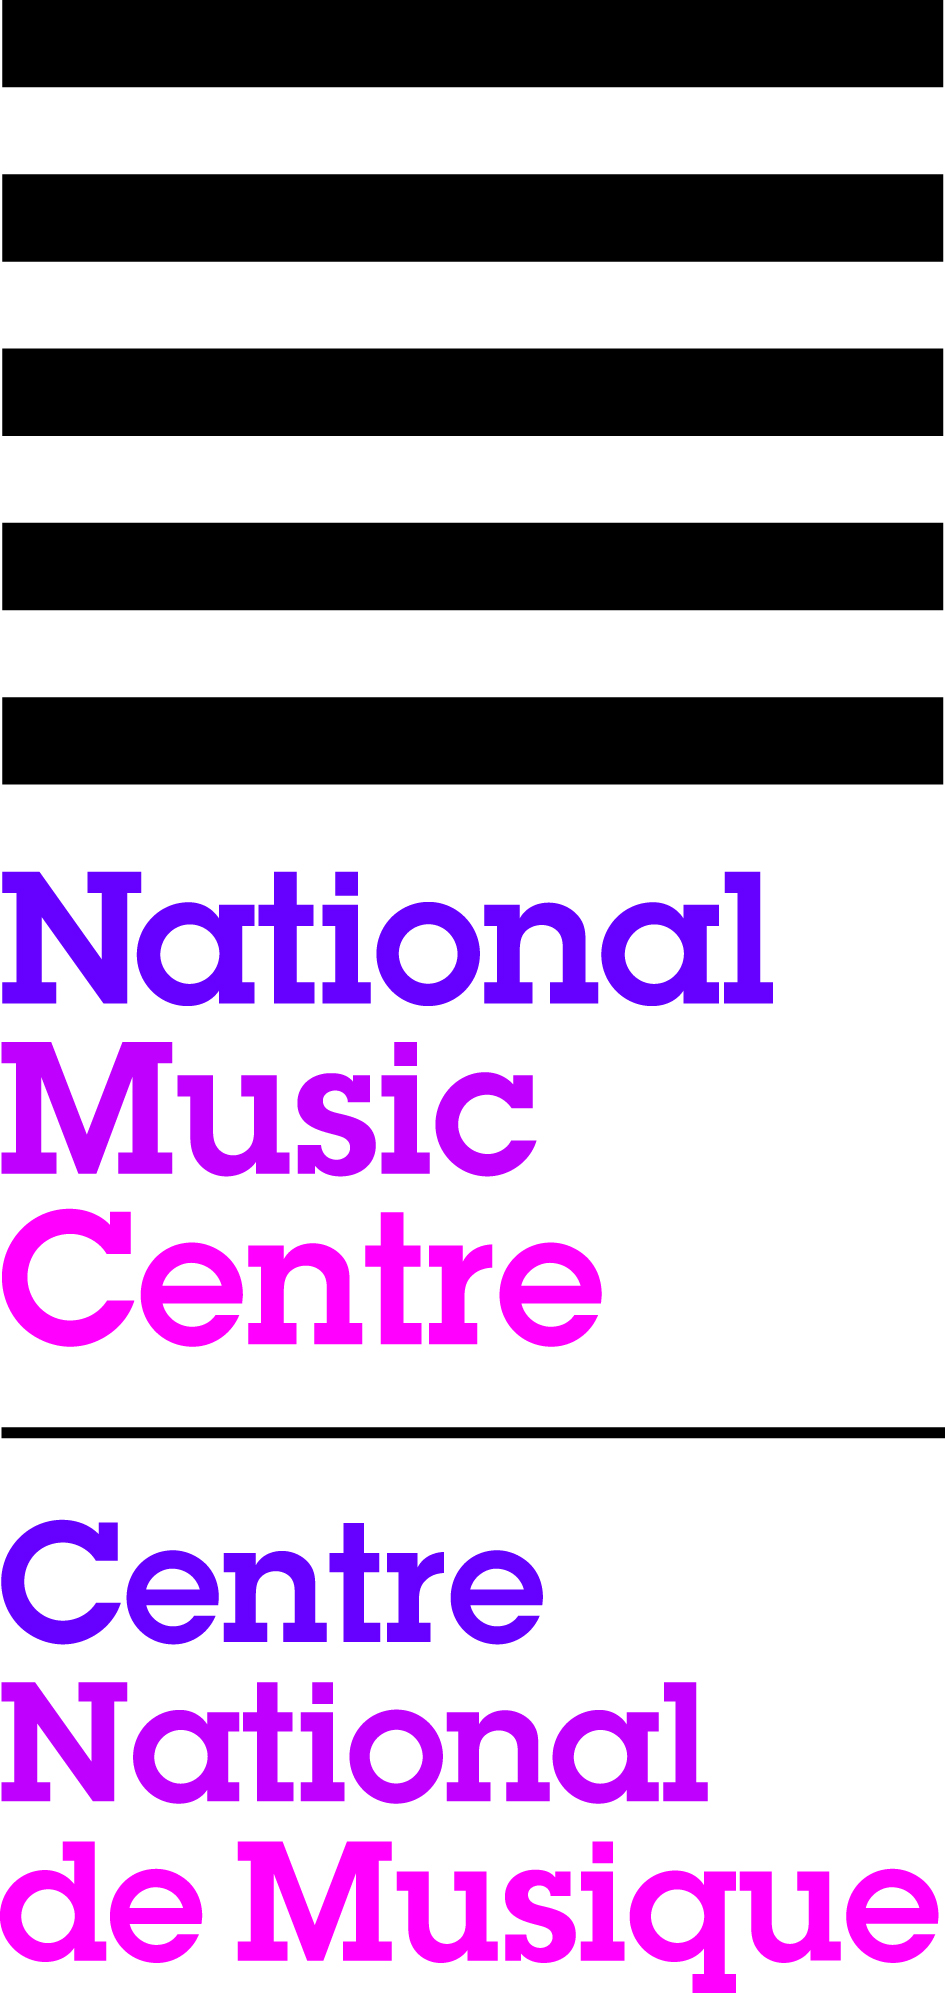 National Music Centre